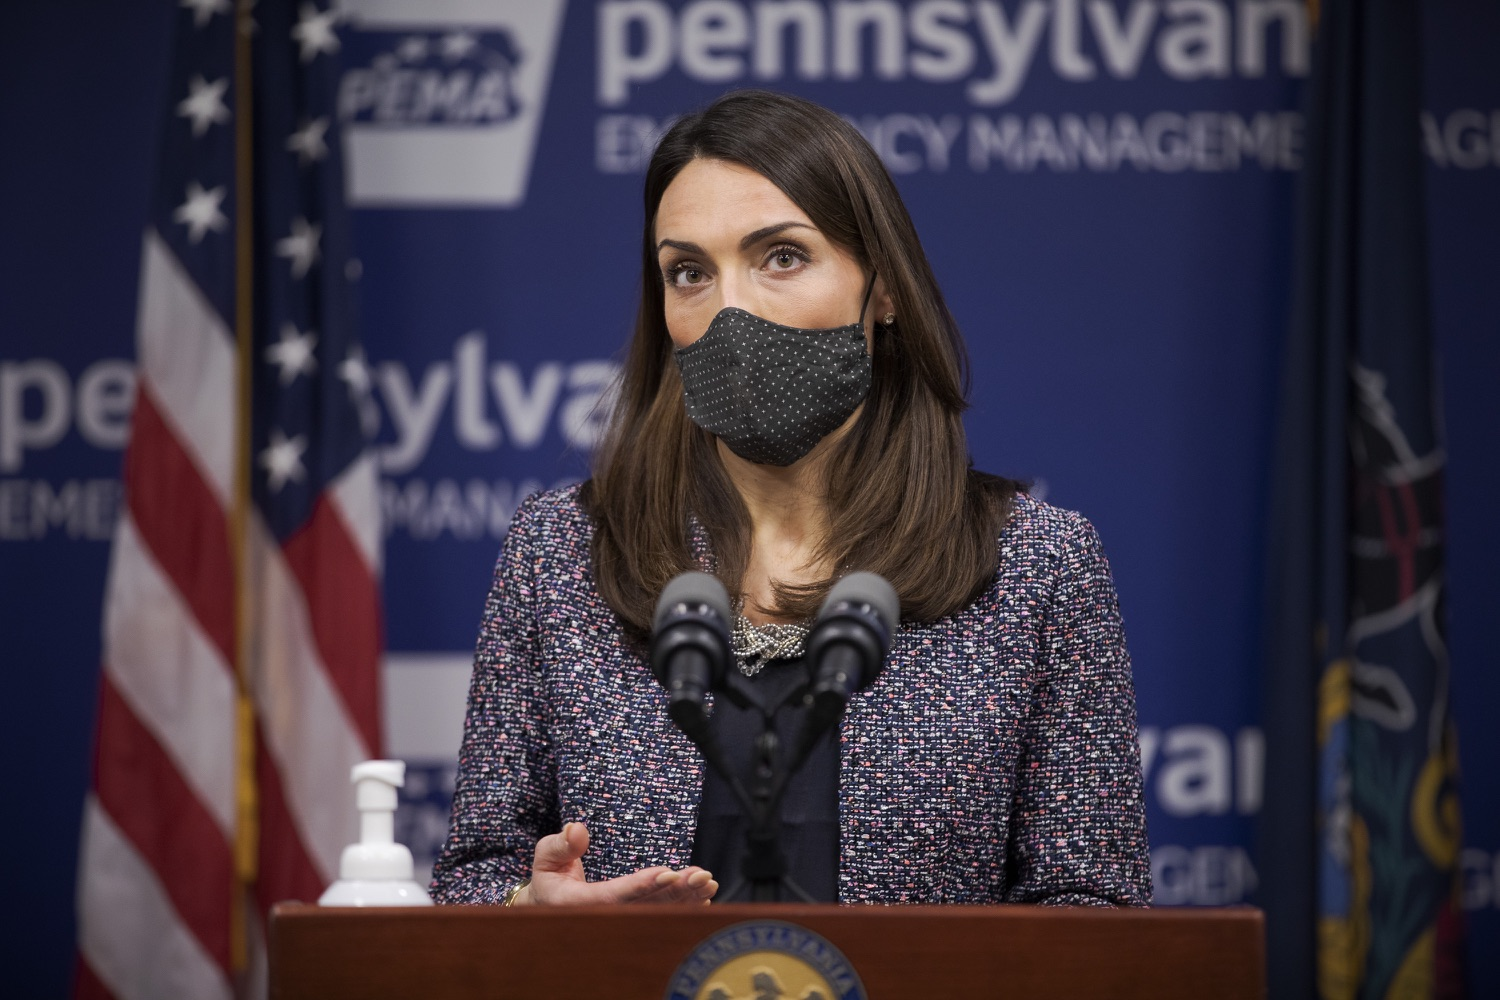 Pennsylvania Acting Secretary of Health Alison Beam speaks at a virtual press conference on Tuesday, Jan. 26, 2020. (Source: Pa.gov)